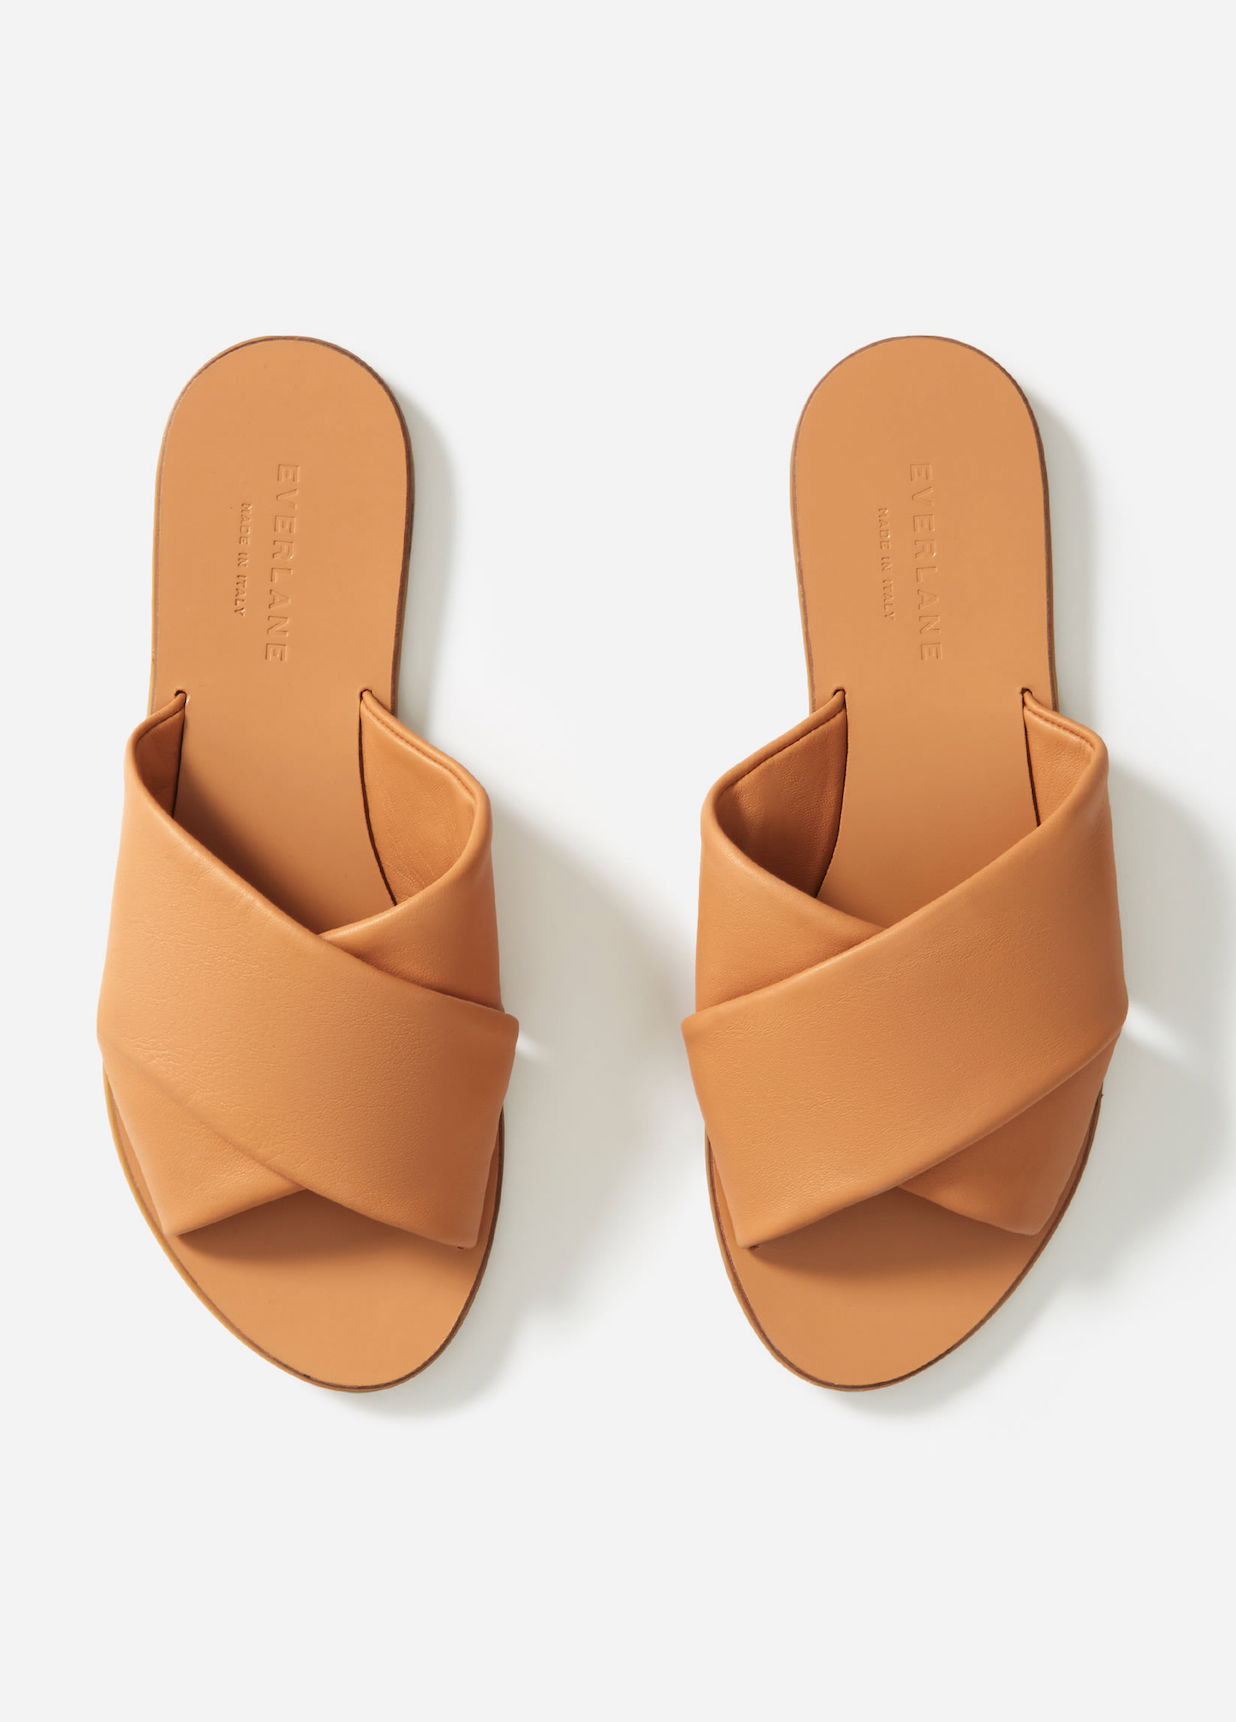 Leathers Crossover Sandals